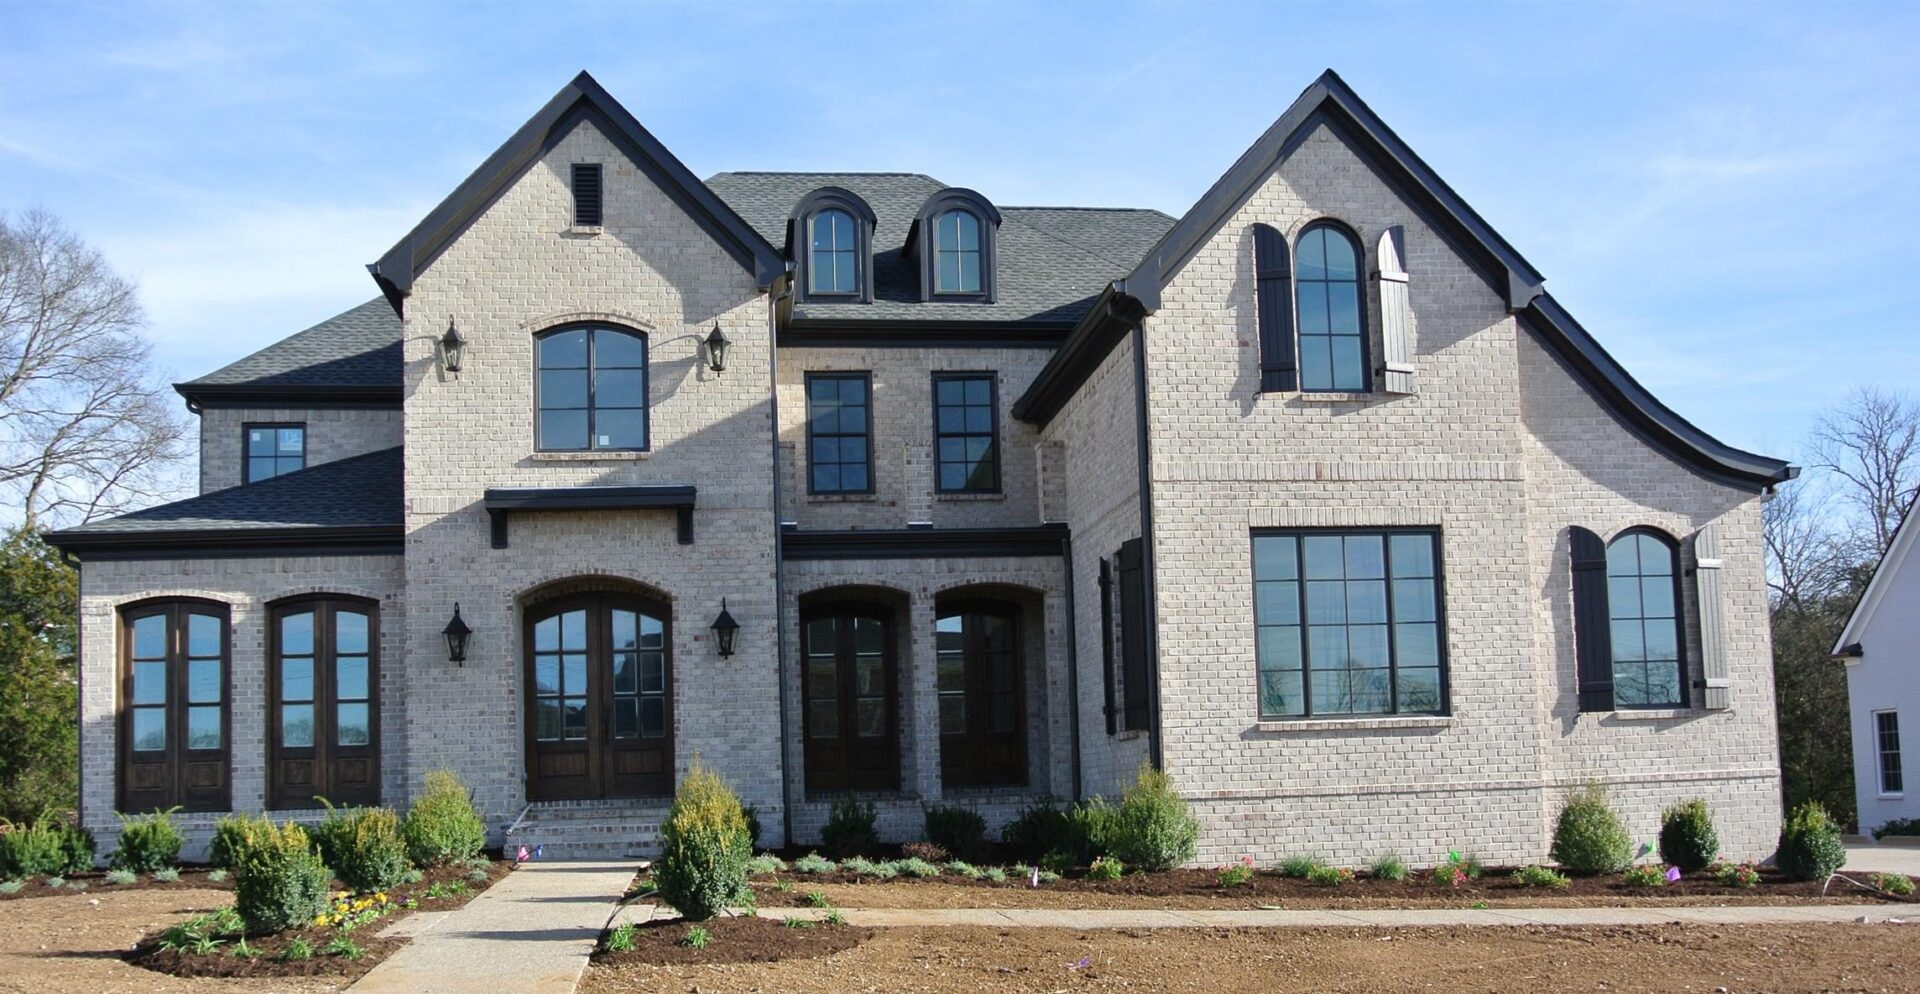 Westchester M - High-end home builders for luxury homes - luxury home builder | Nashville, TN